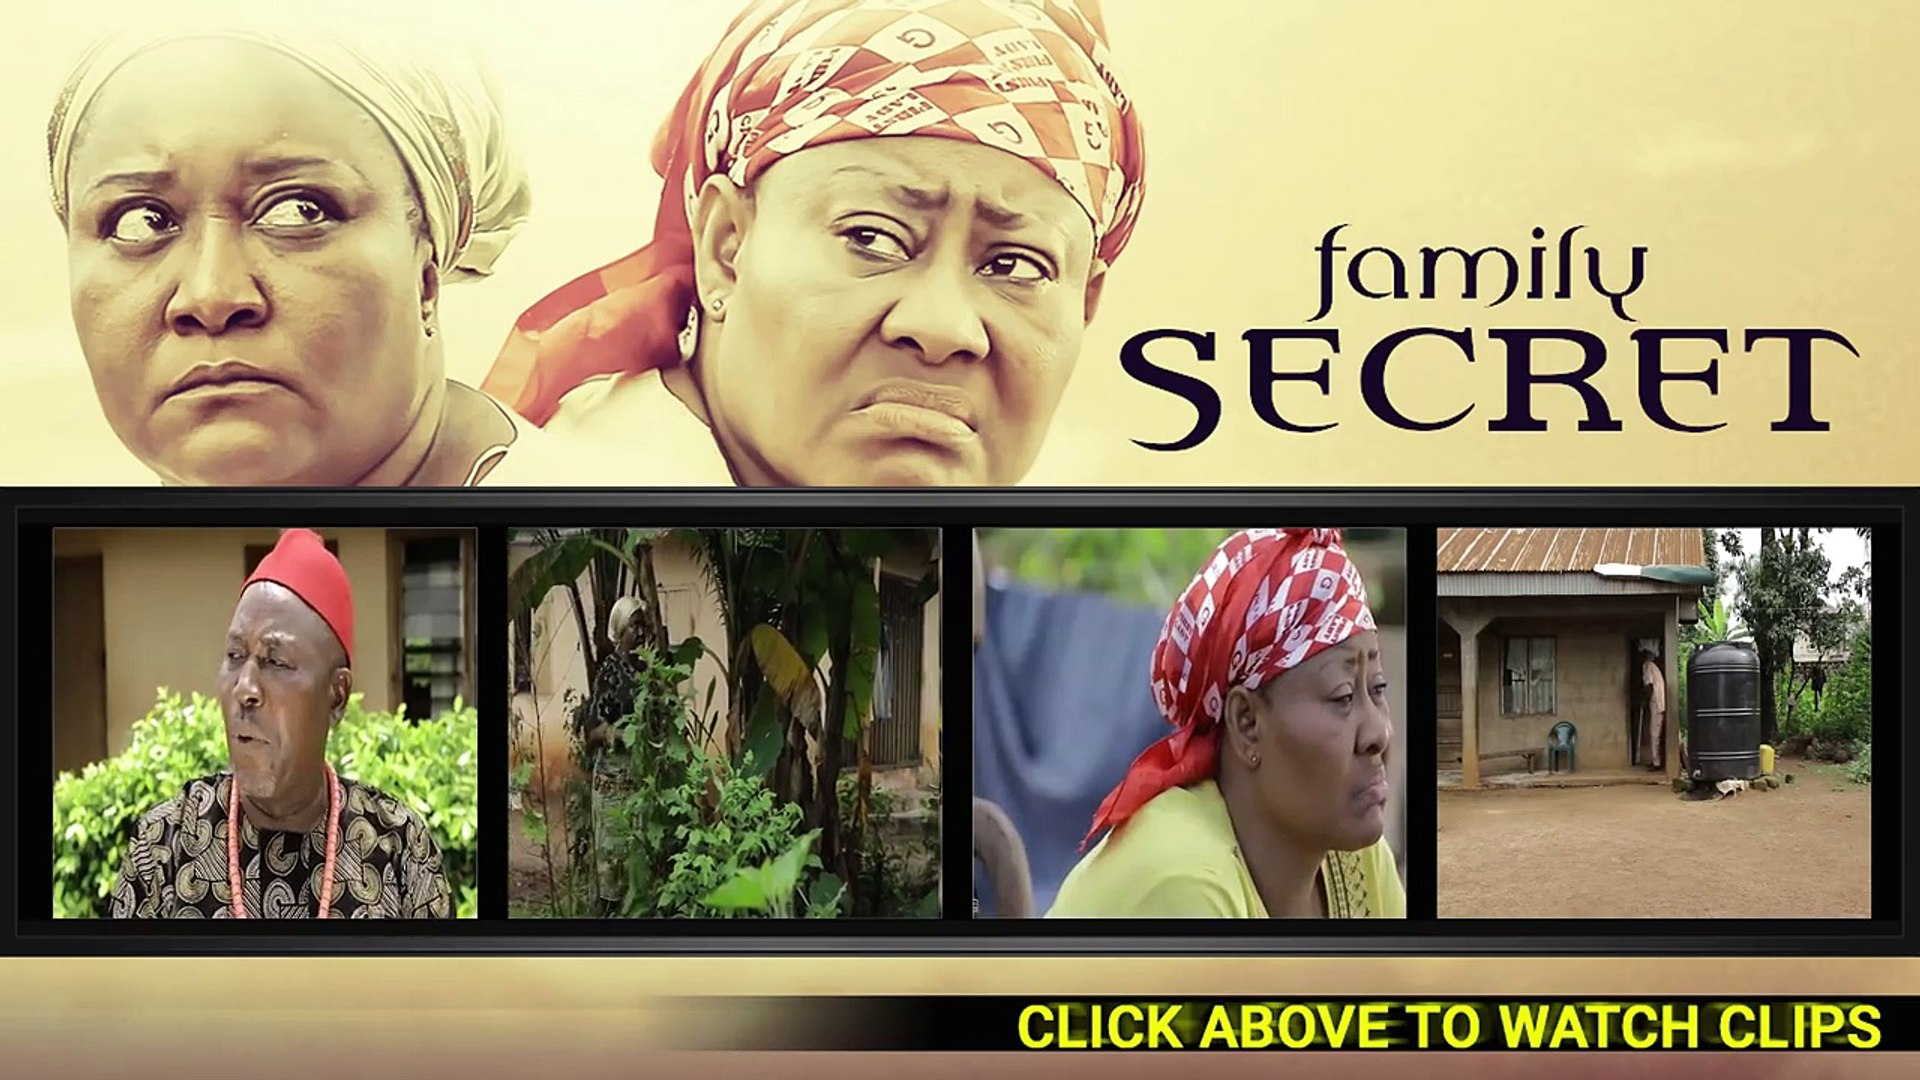 Family Secret [Official Trailer] Latest 2016 Nigerian Nollywood Drama Movie